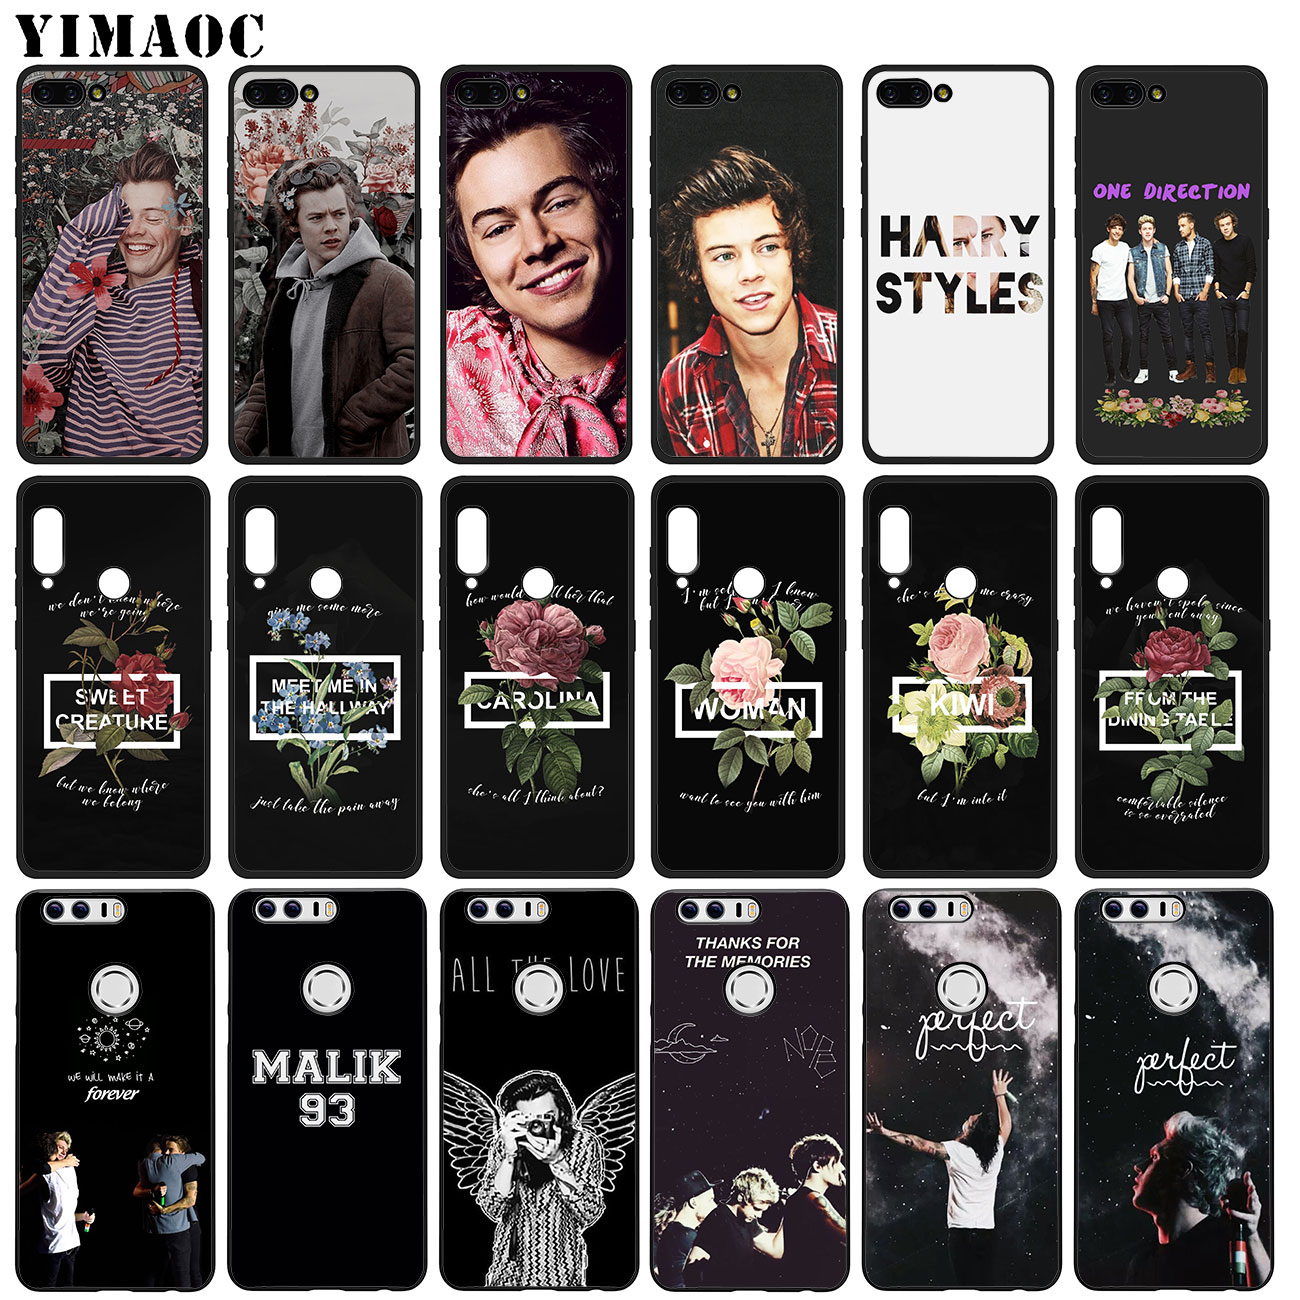 US $2 48 17% OFF|YIMAOC Harry Styles One Direction 1D Soft Silicone Case  for Huawei Y7 Y6 Prime Y9 2018 Honor 8C 8X 8 9 10 Lite 7C 7X 7A Pro-in  Fitted